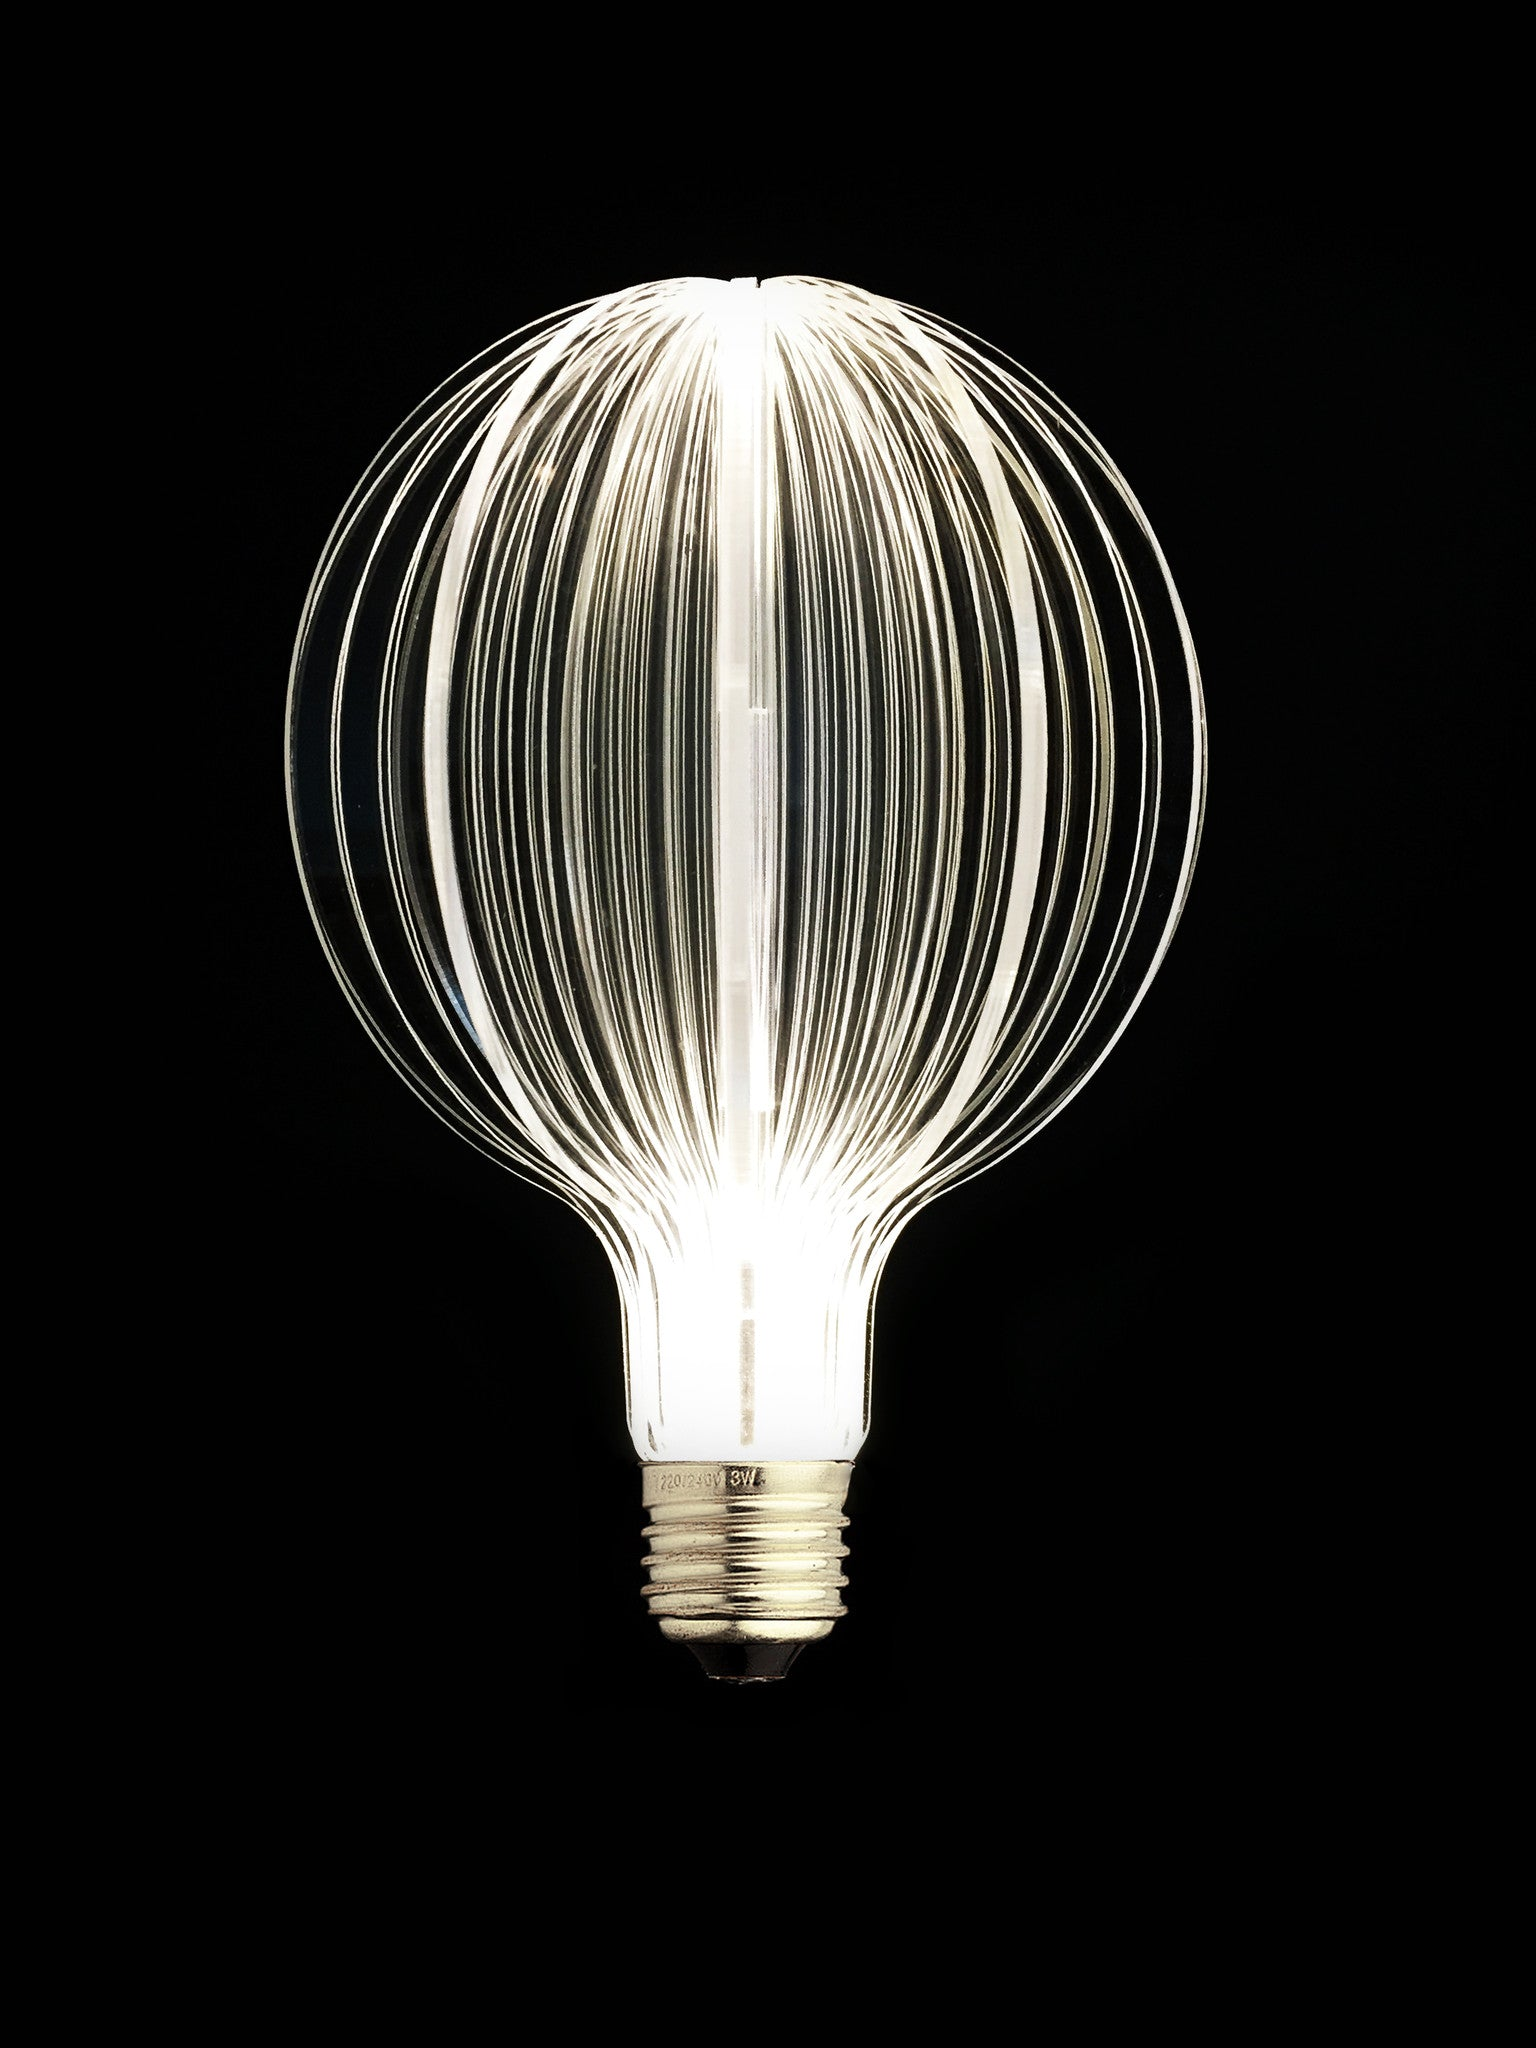 SUN . CLASSIC LIGHTING BULBS . DESIGN 1 + 1 . HONG KONG DESIGNER